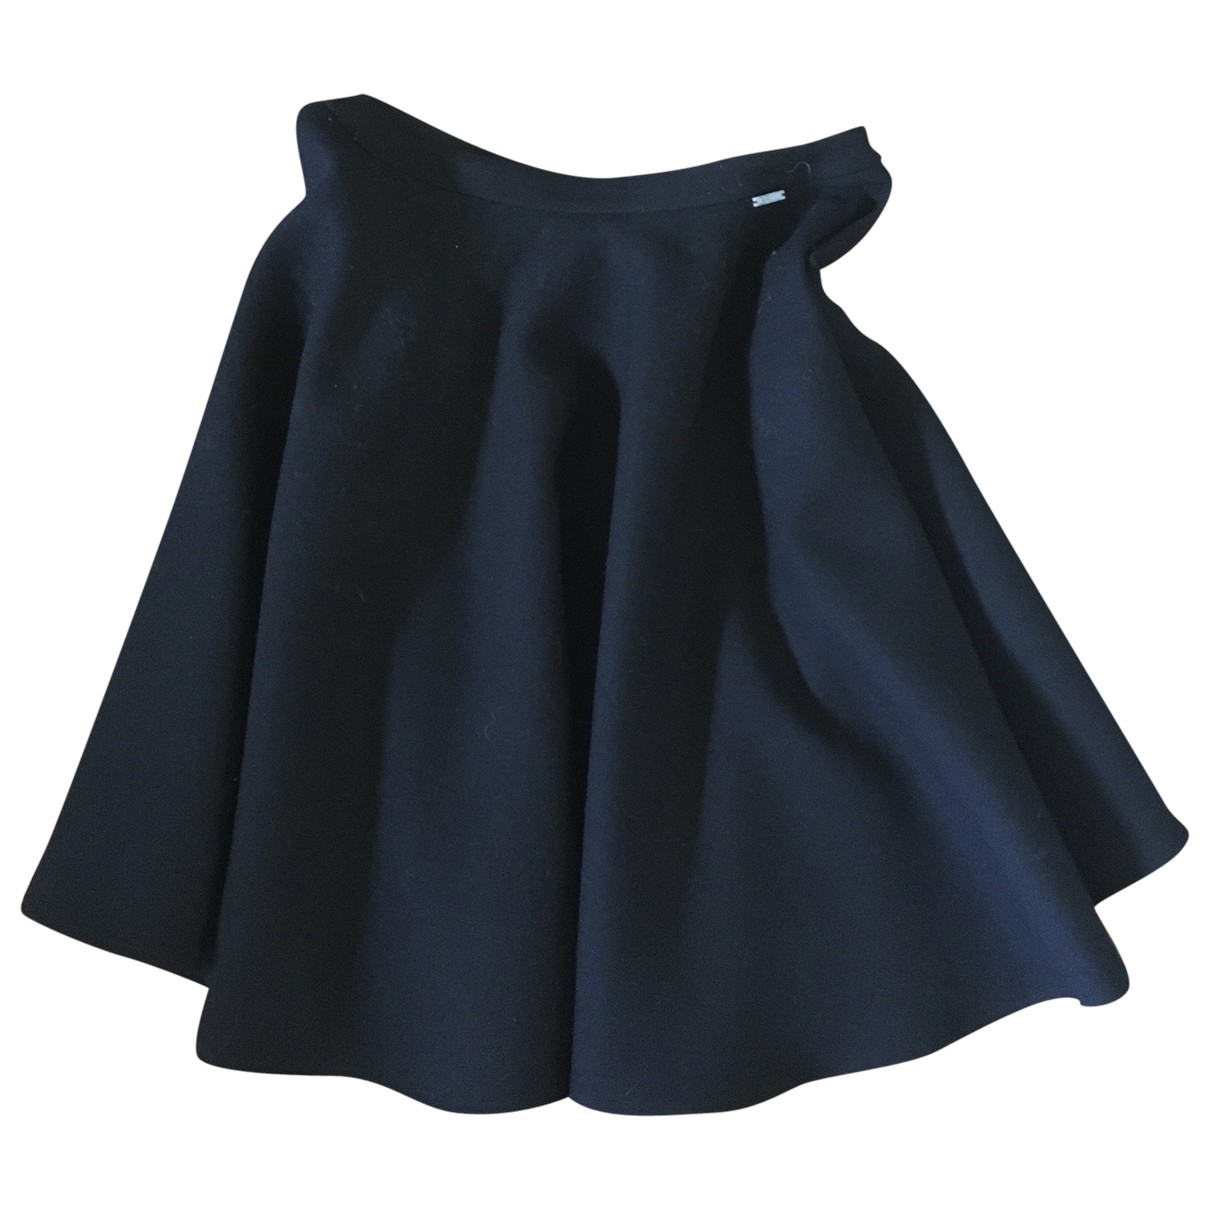 Gianfranco Ferré \N Black Wool skirt for Women 40 IT